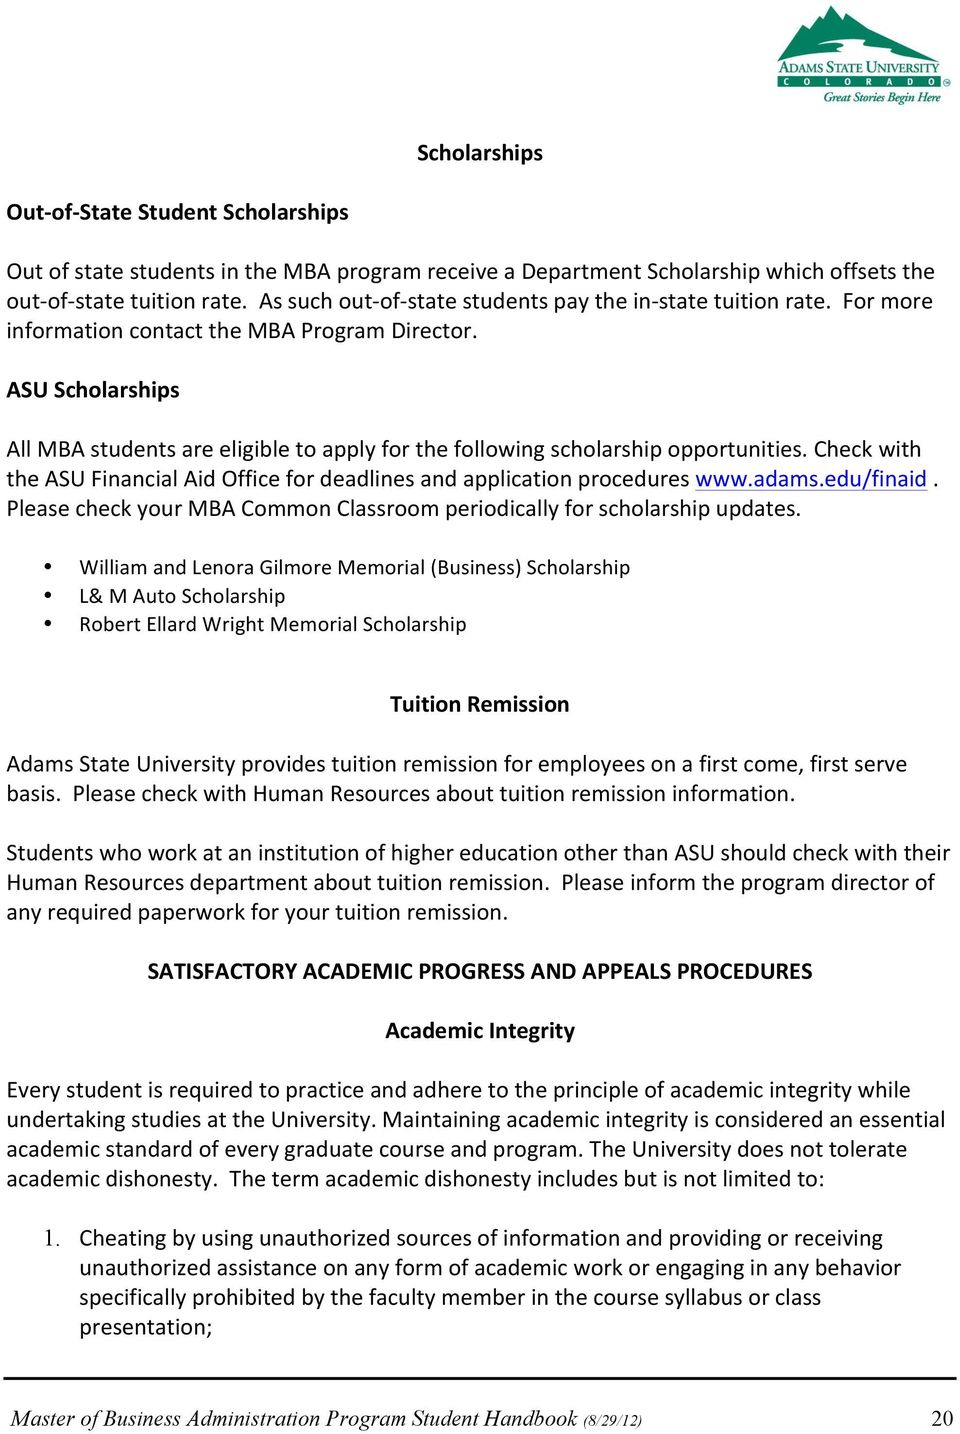 ASU Scholarships All MBA students are eligible to apply for the following scholarship opportunities. Check with the ASU Financial Aid Office for deadlines and application procedures www.adams.